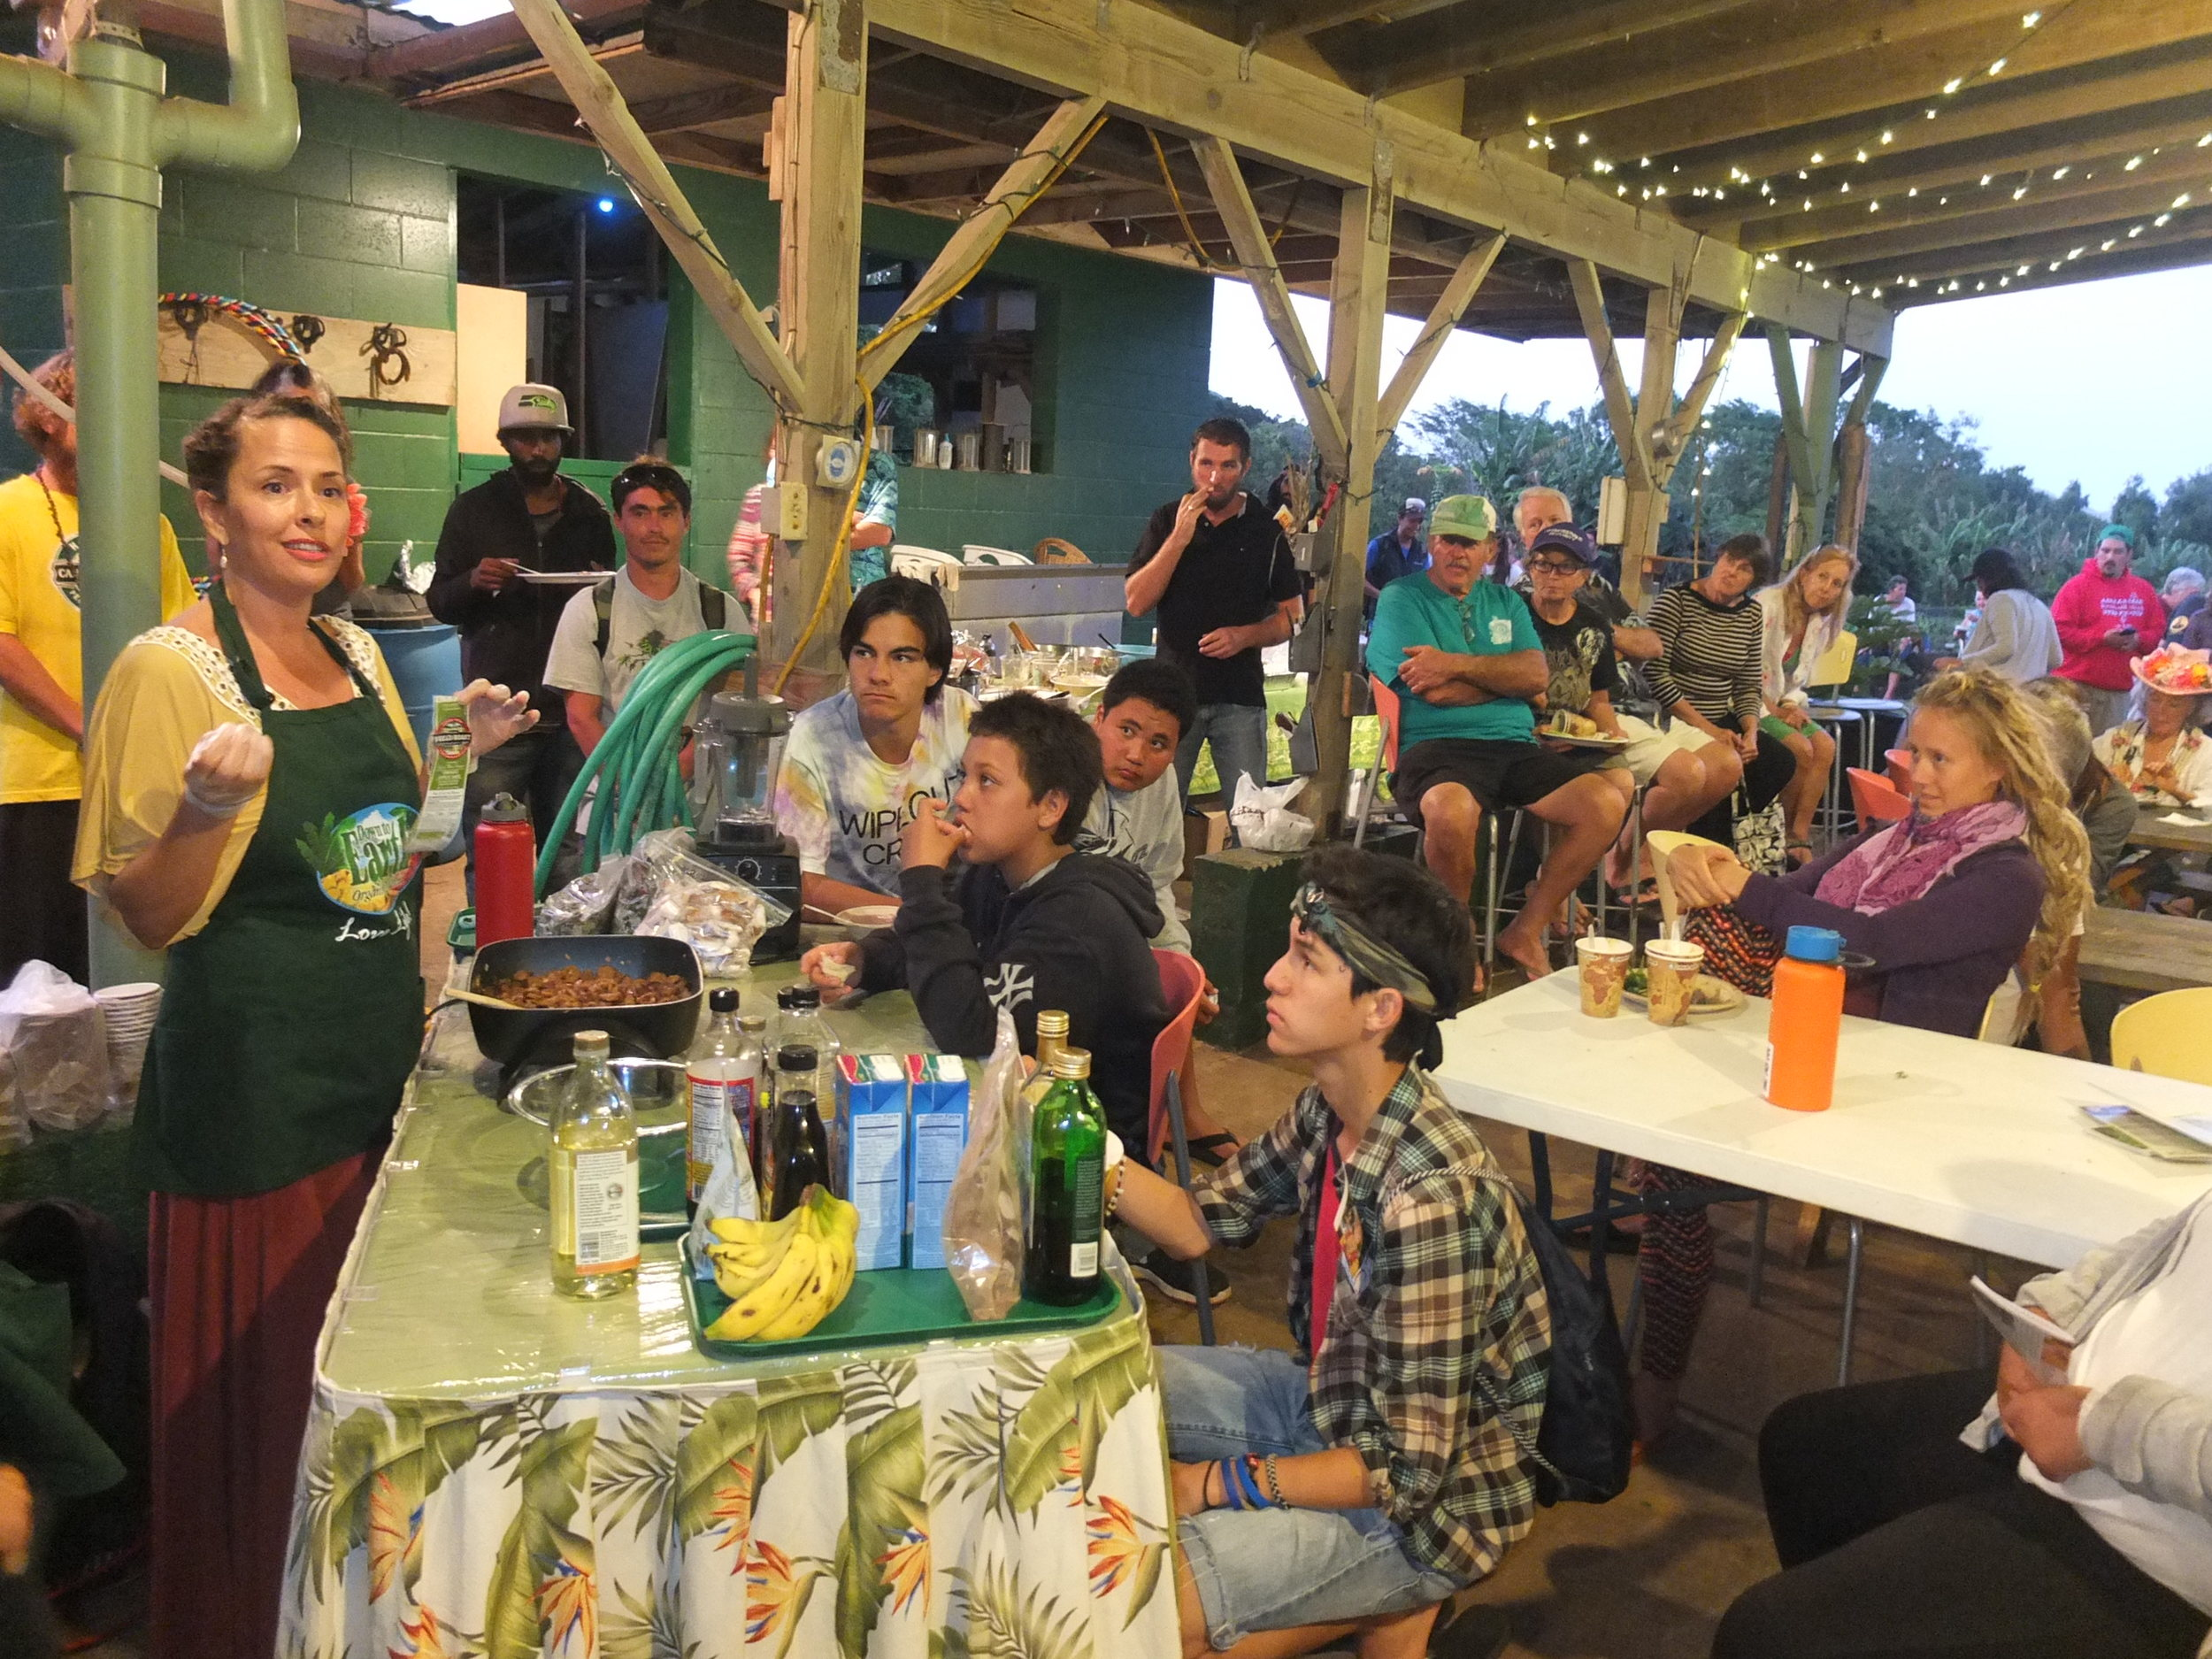 """Trisha """"Mama T"""" Gonsalves of Down To Earth Natural and Organic along with local farmers host ITY-Na kama Kai for an organic feast during her """"Food as Medicine"""" demo."""